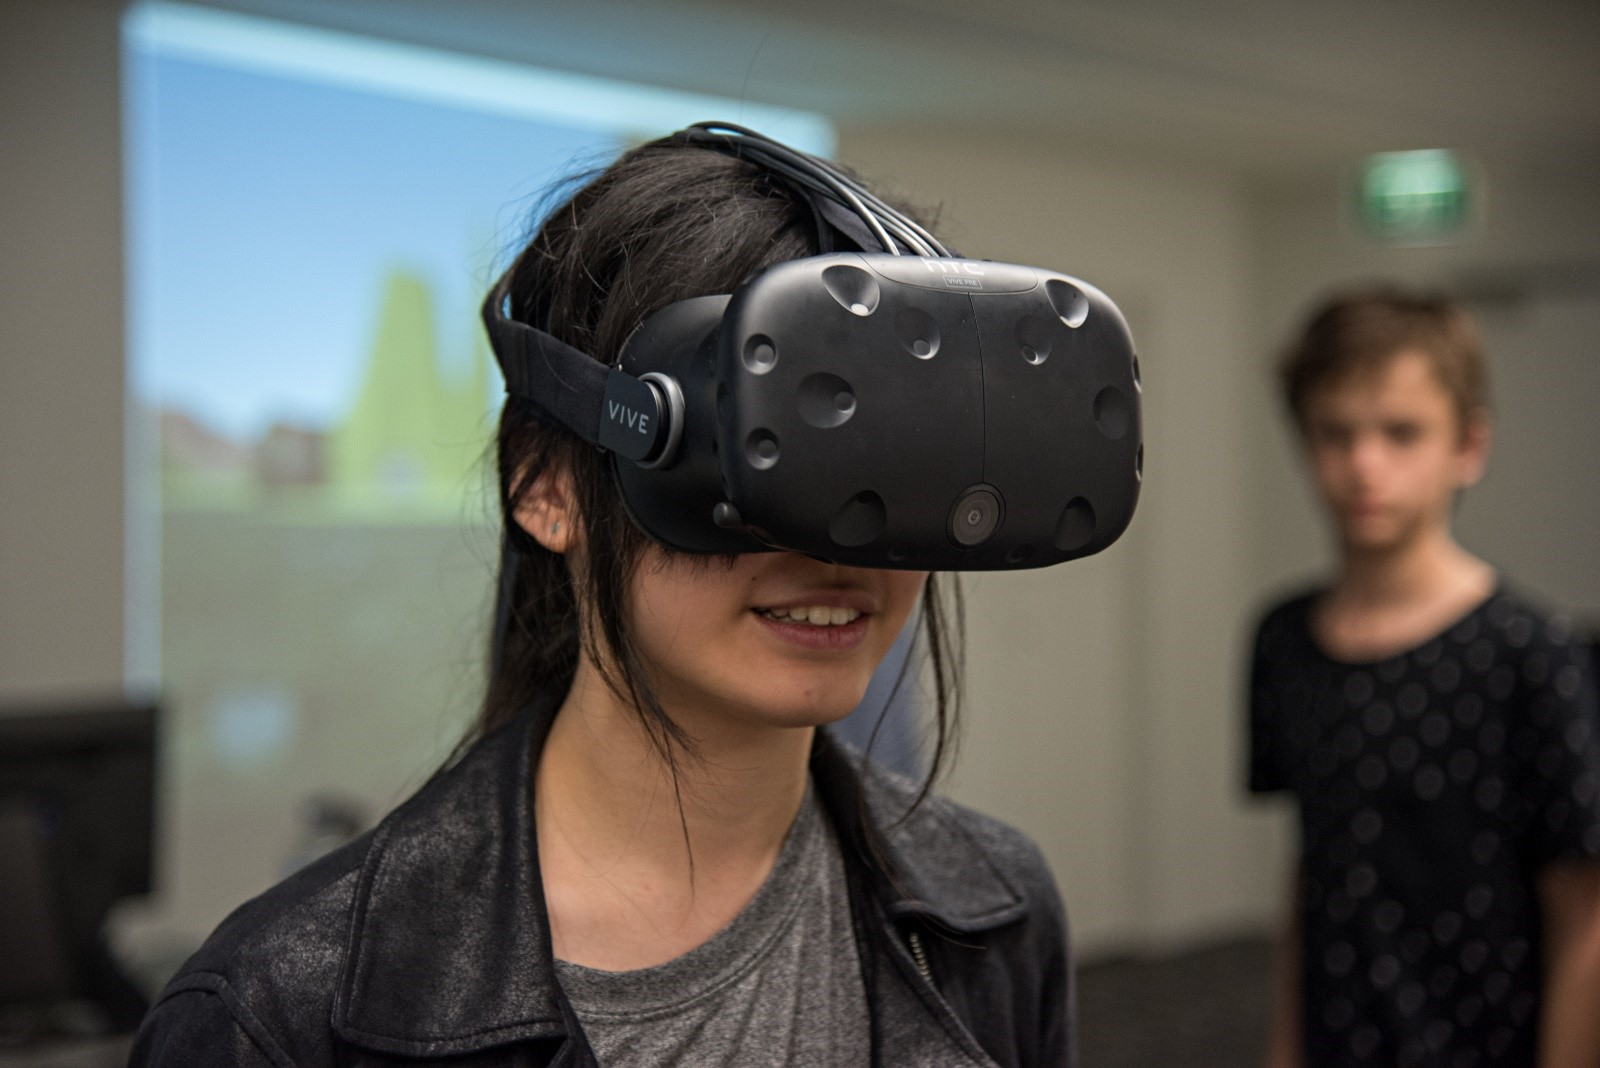 Young person using a VR headset